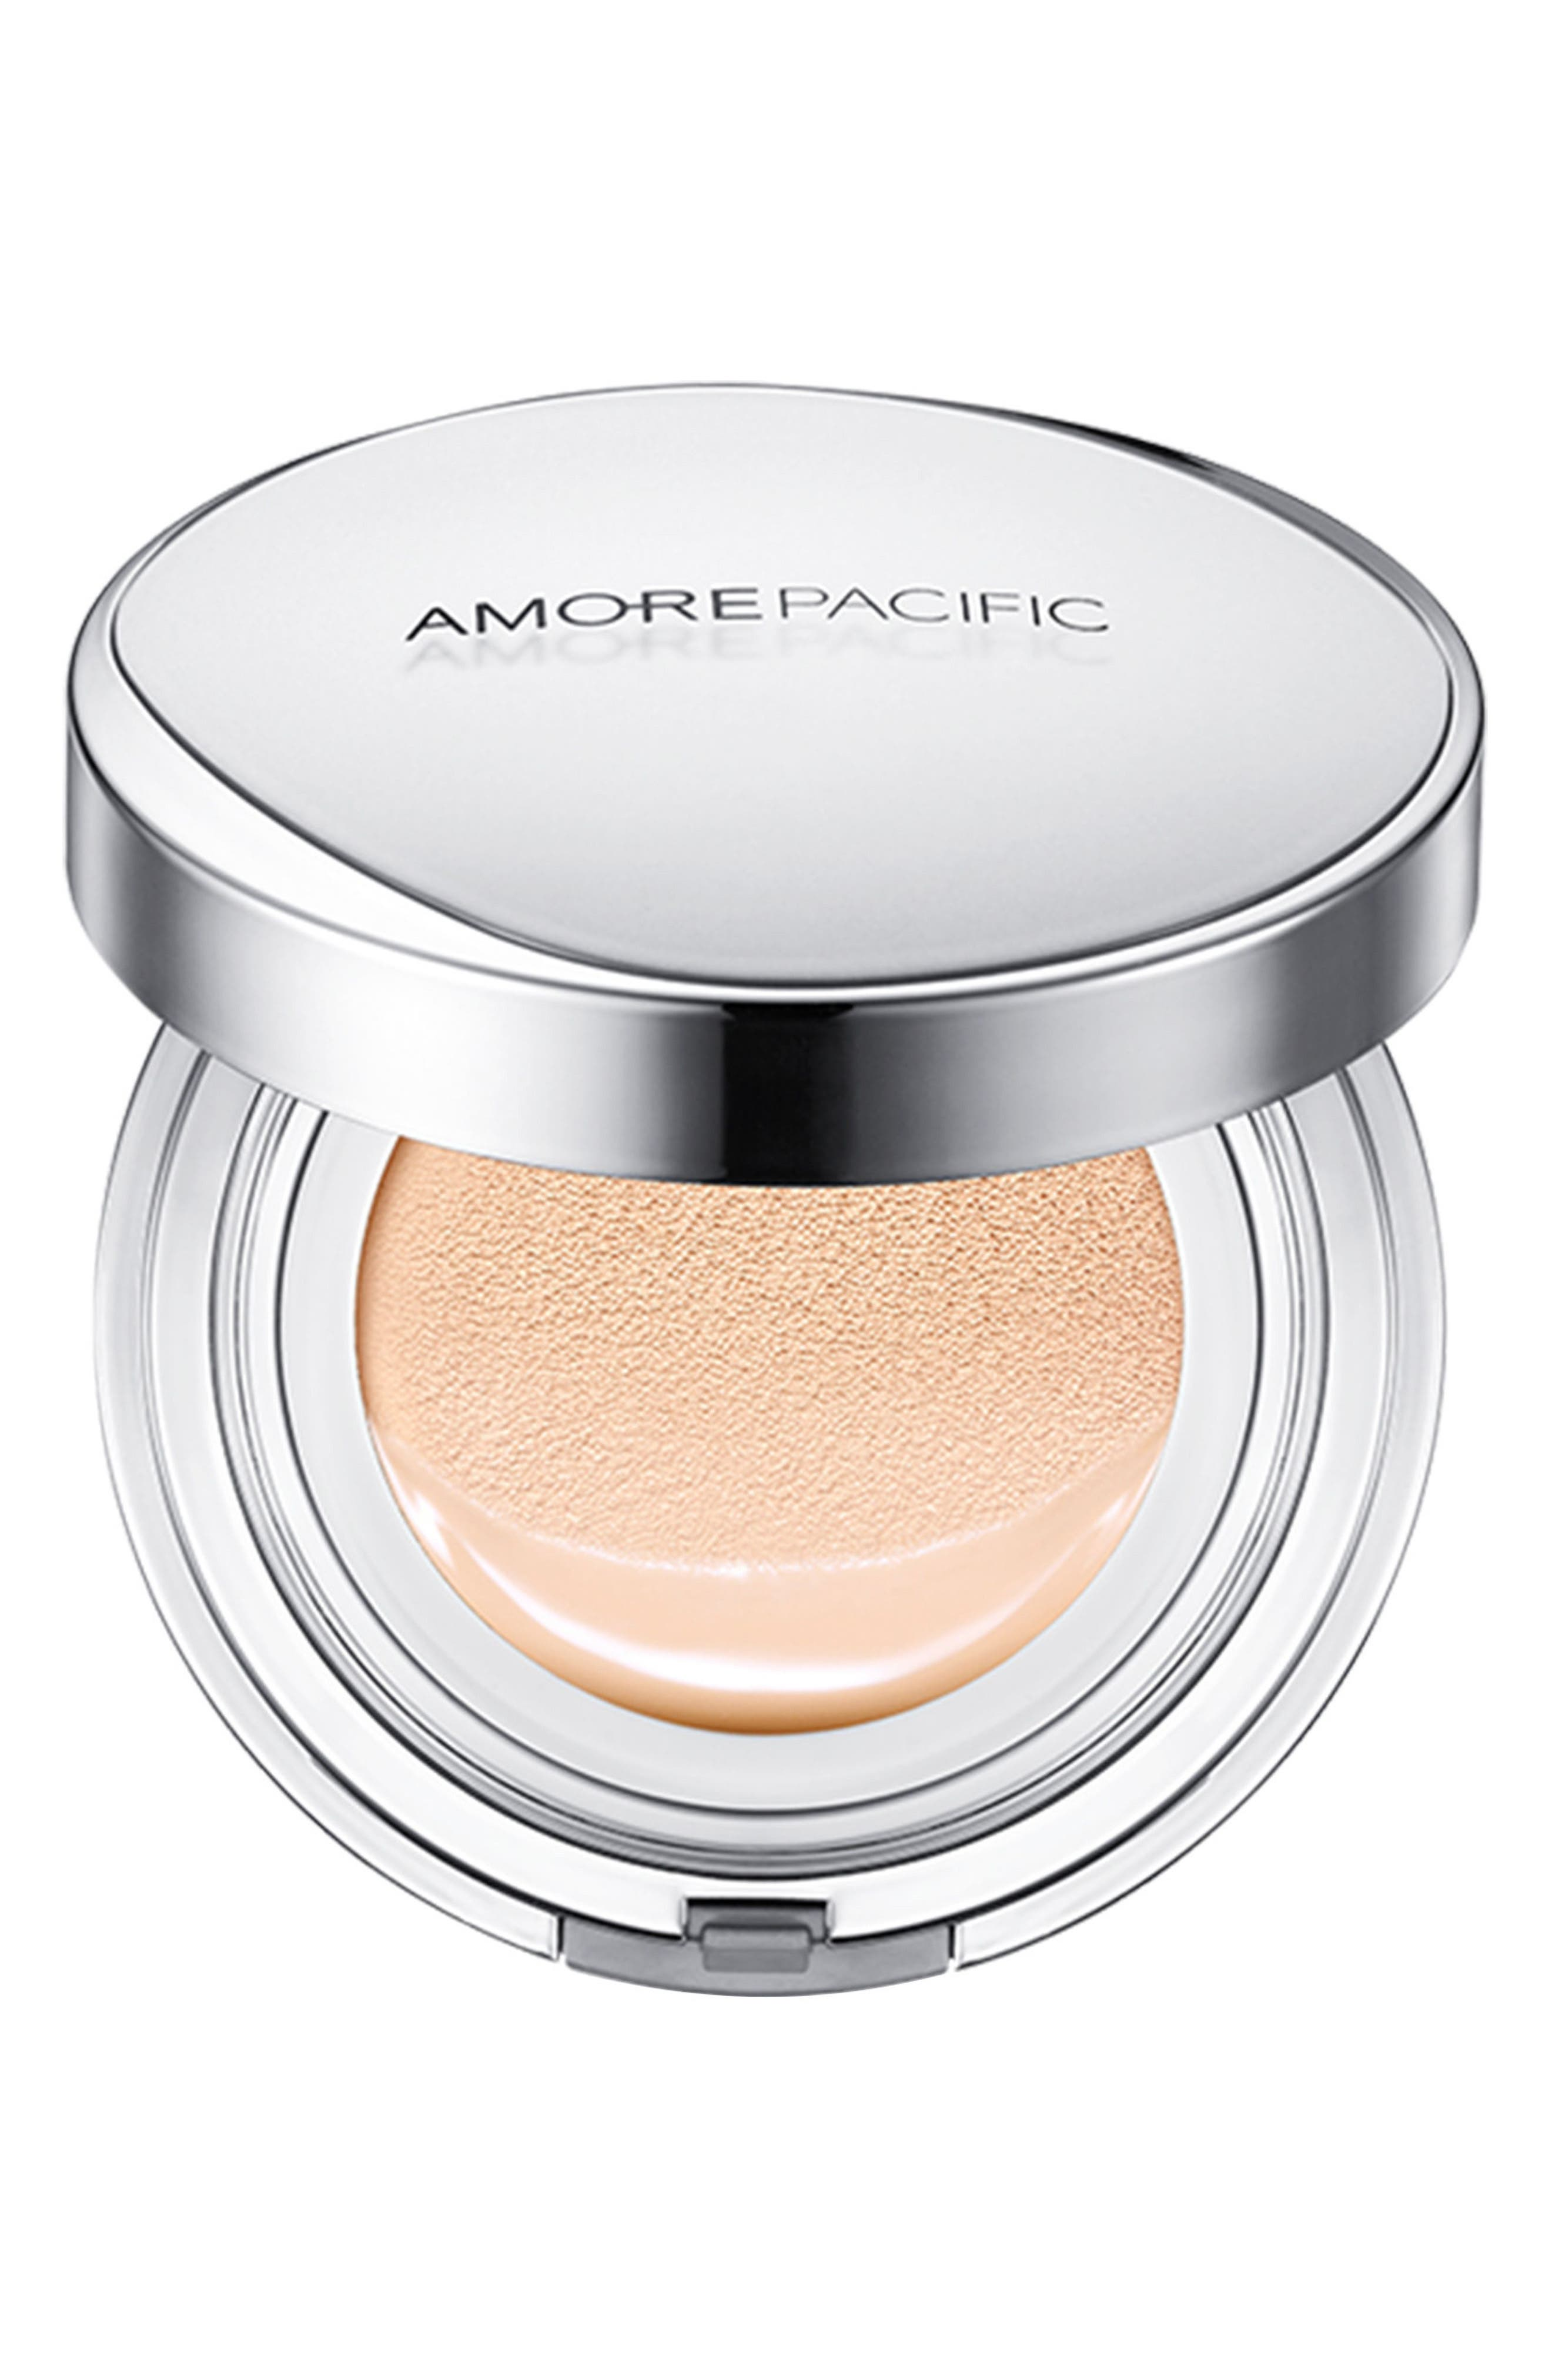 AMOREPACIFIC,                             'Color Control' Cushion Compact Broad Spectrum SPF 50,                             Main thumbnail 1, color,                             106 - MEDIUM PINK